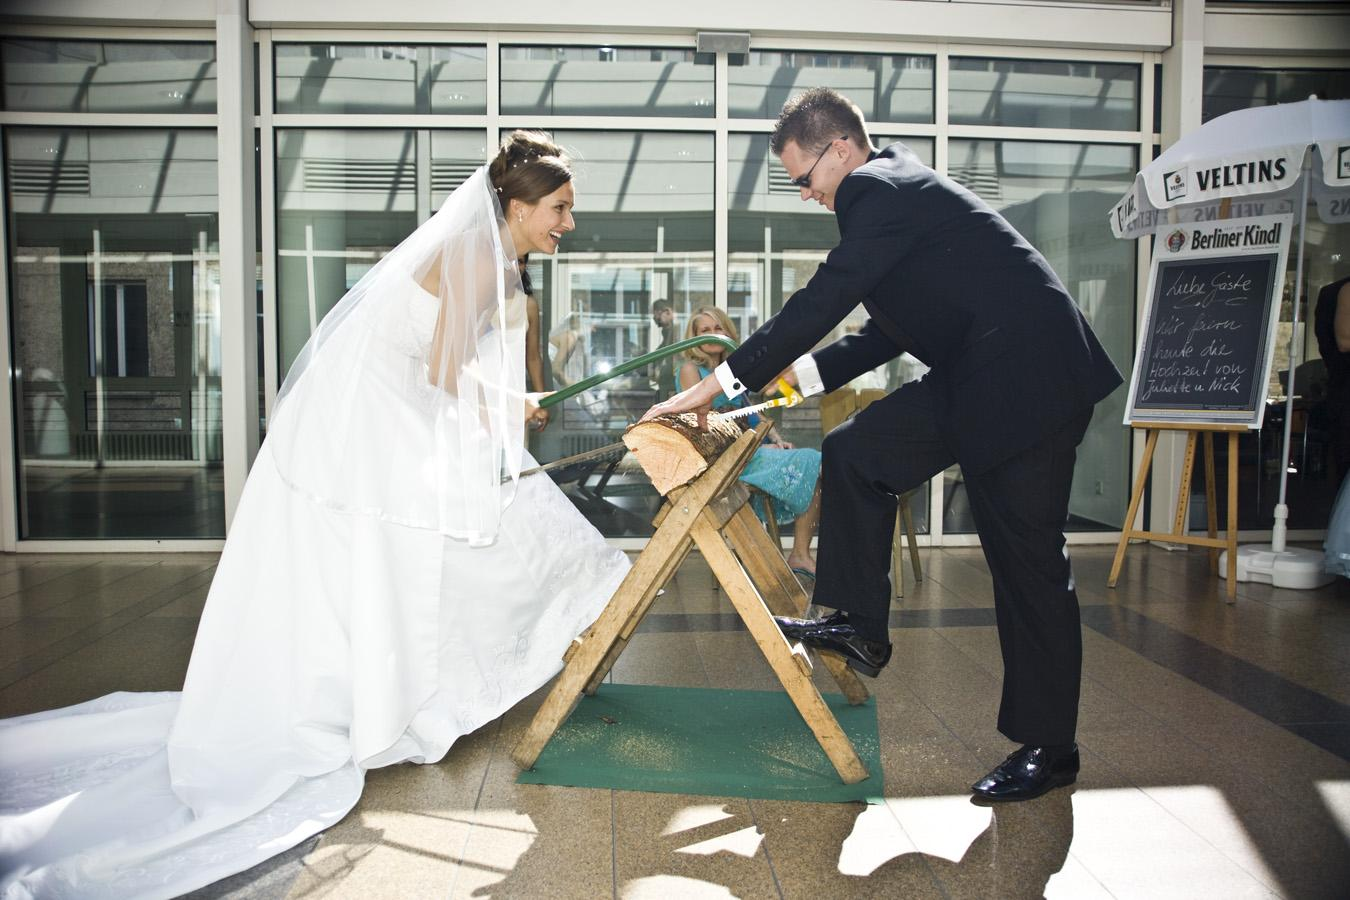 old italian wedding traditions sawing